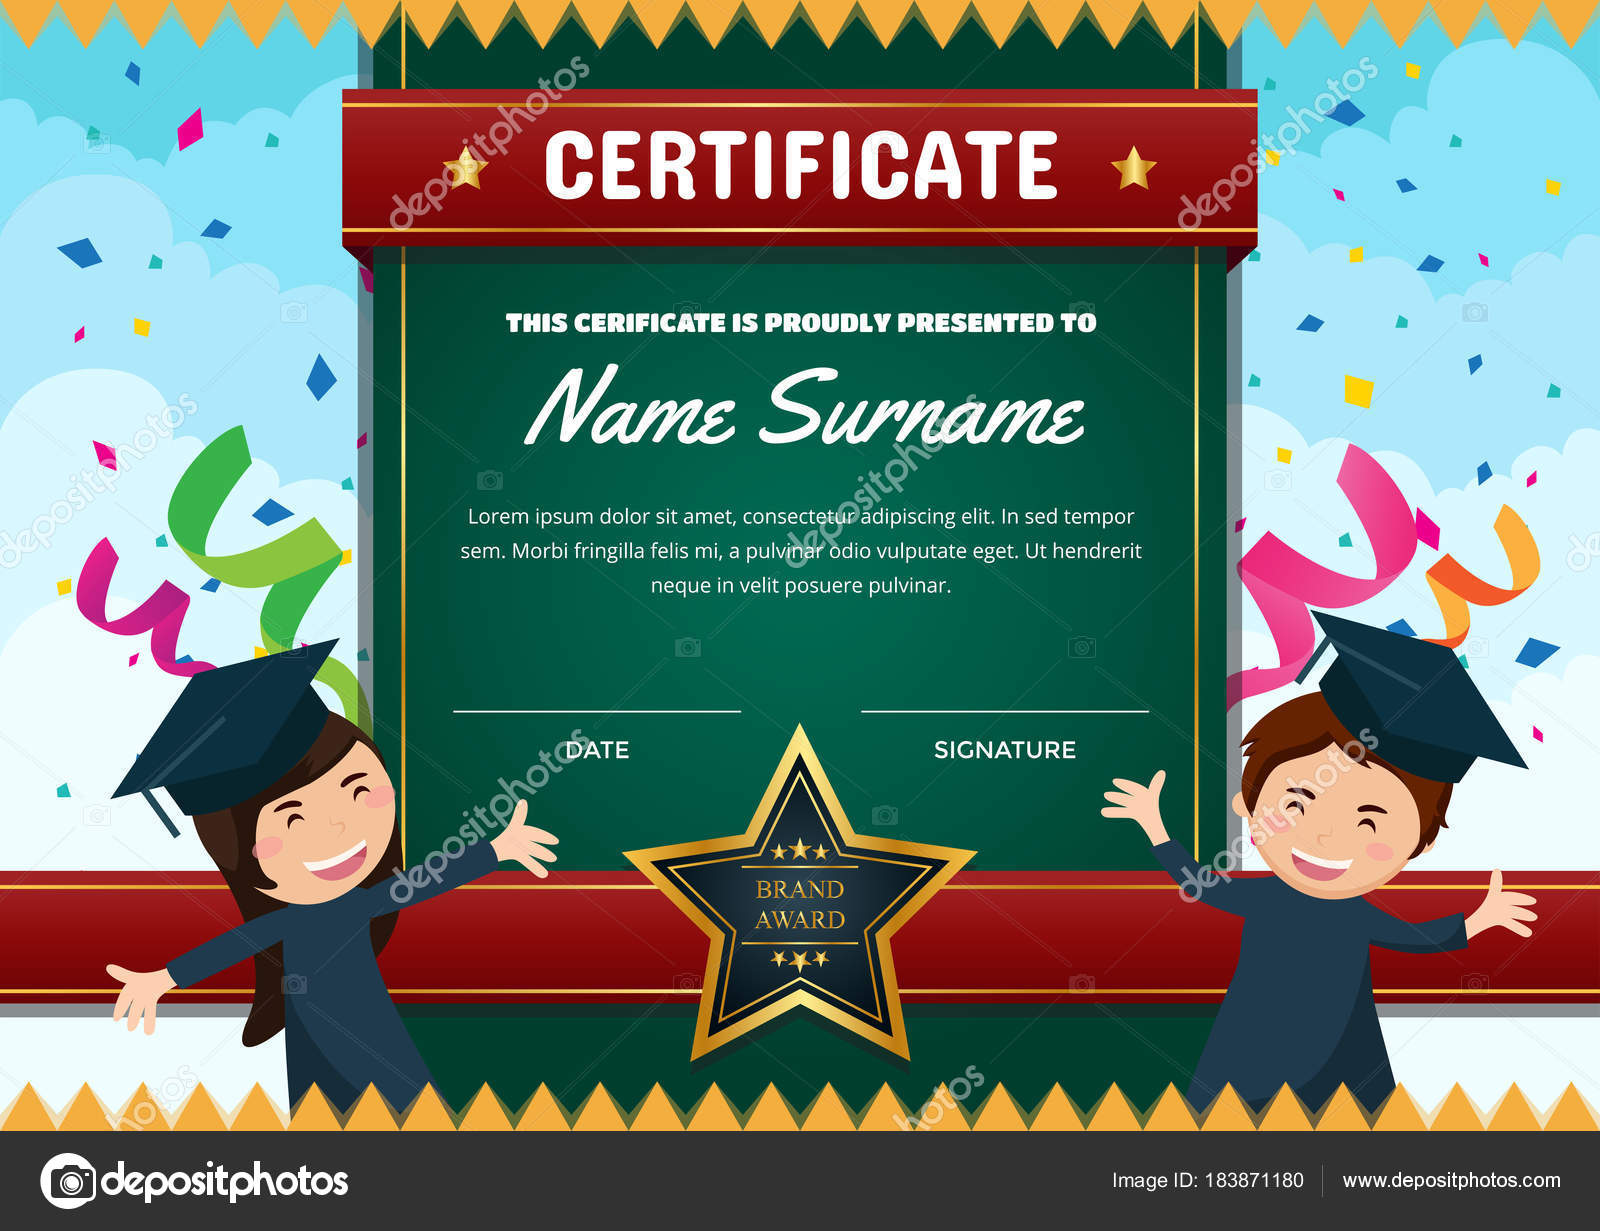 Cute children certificate achievement appreciation template cute children certificate achievement appreciation template graduation theme certificate stock vector yelopaper Images